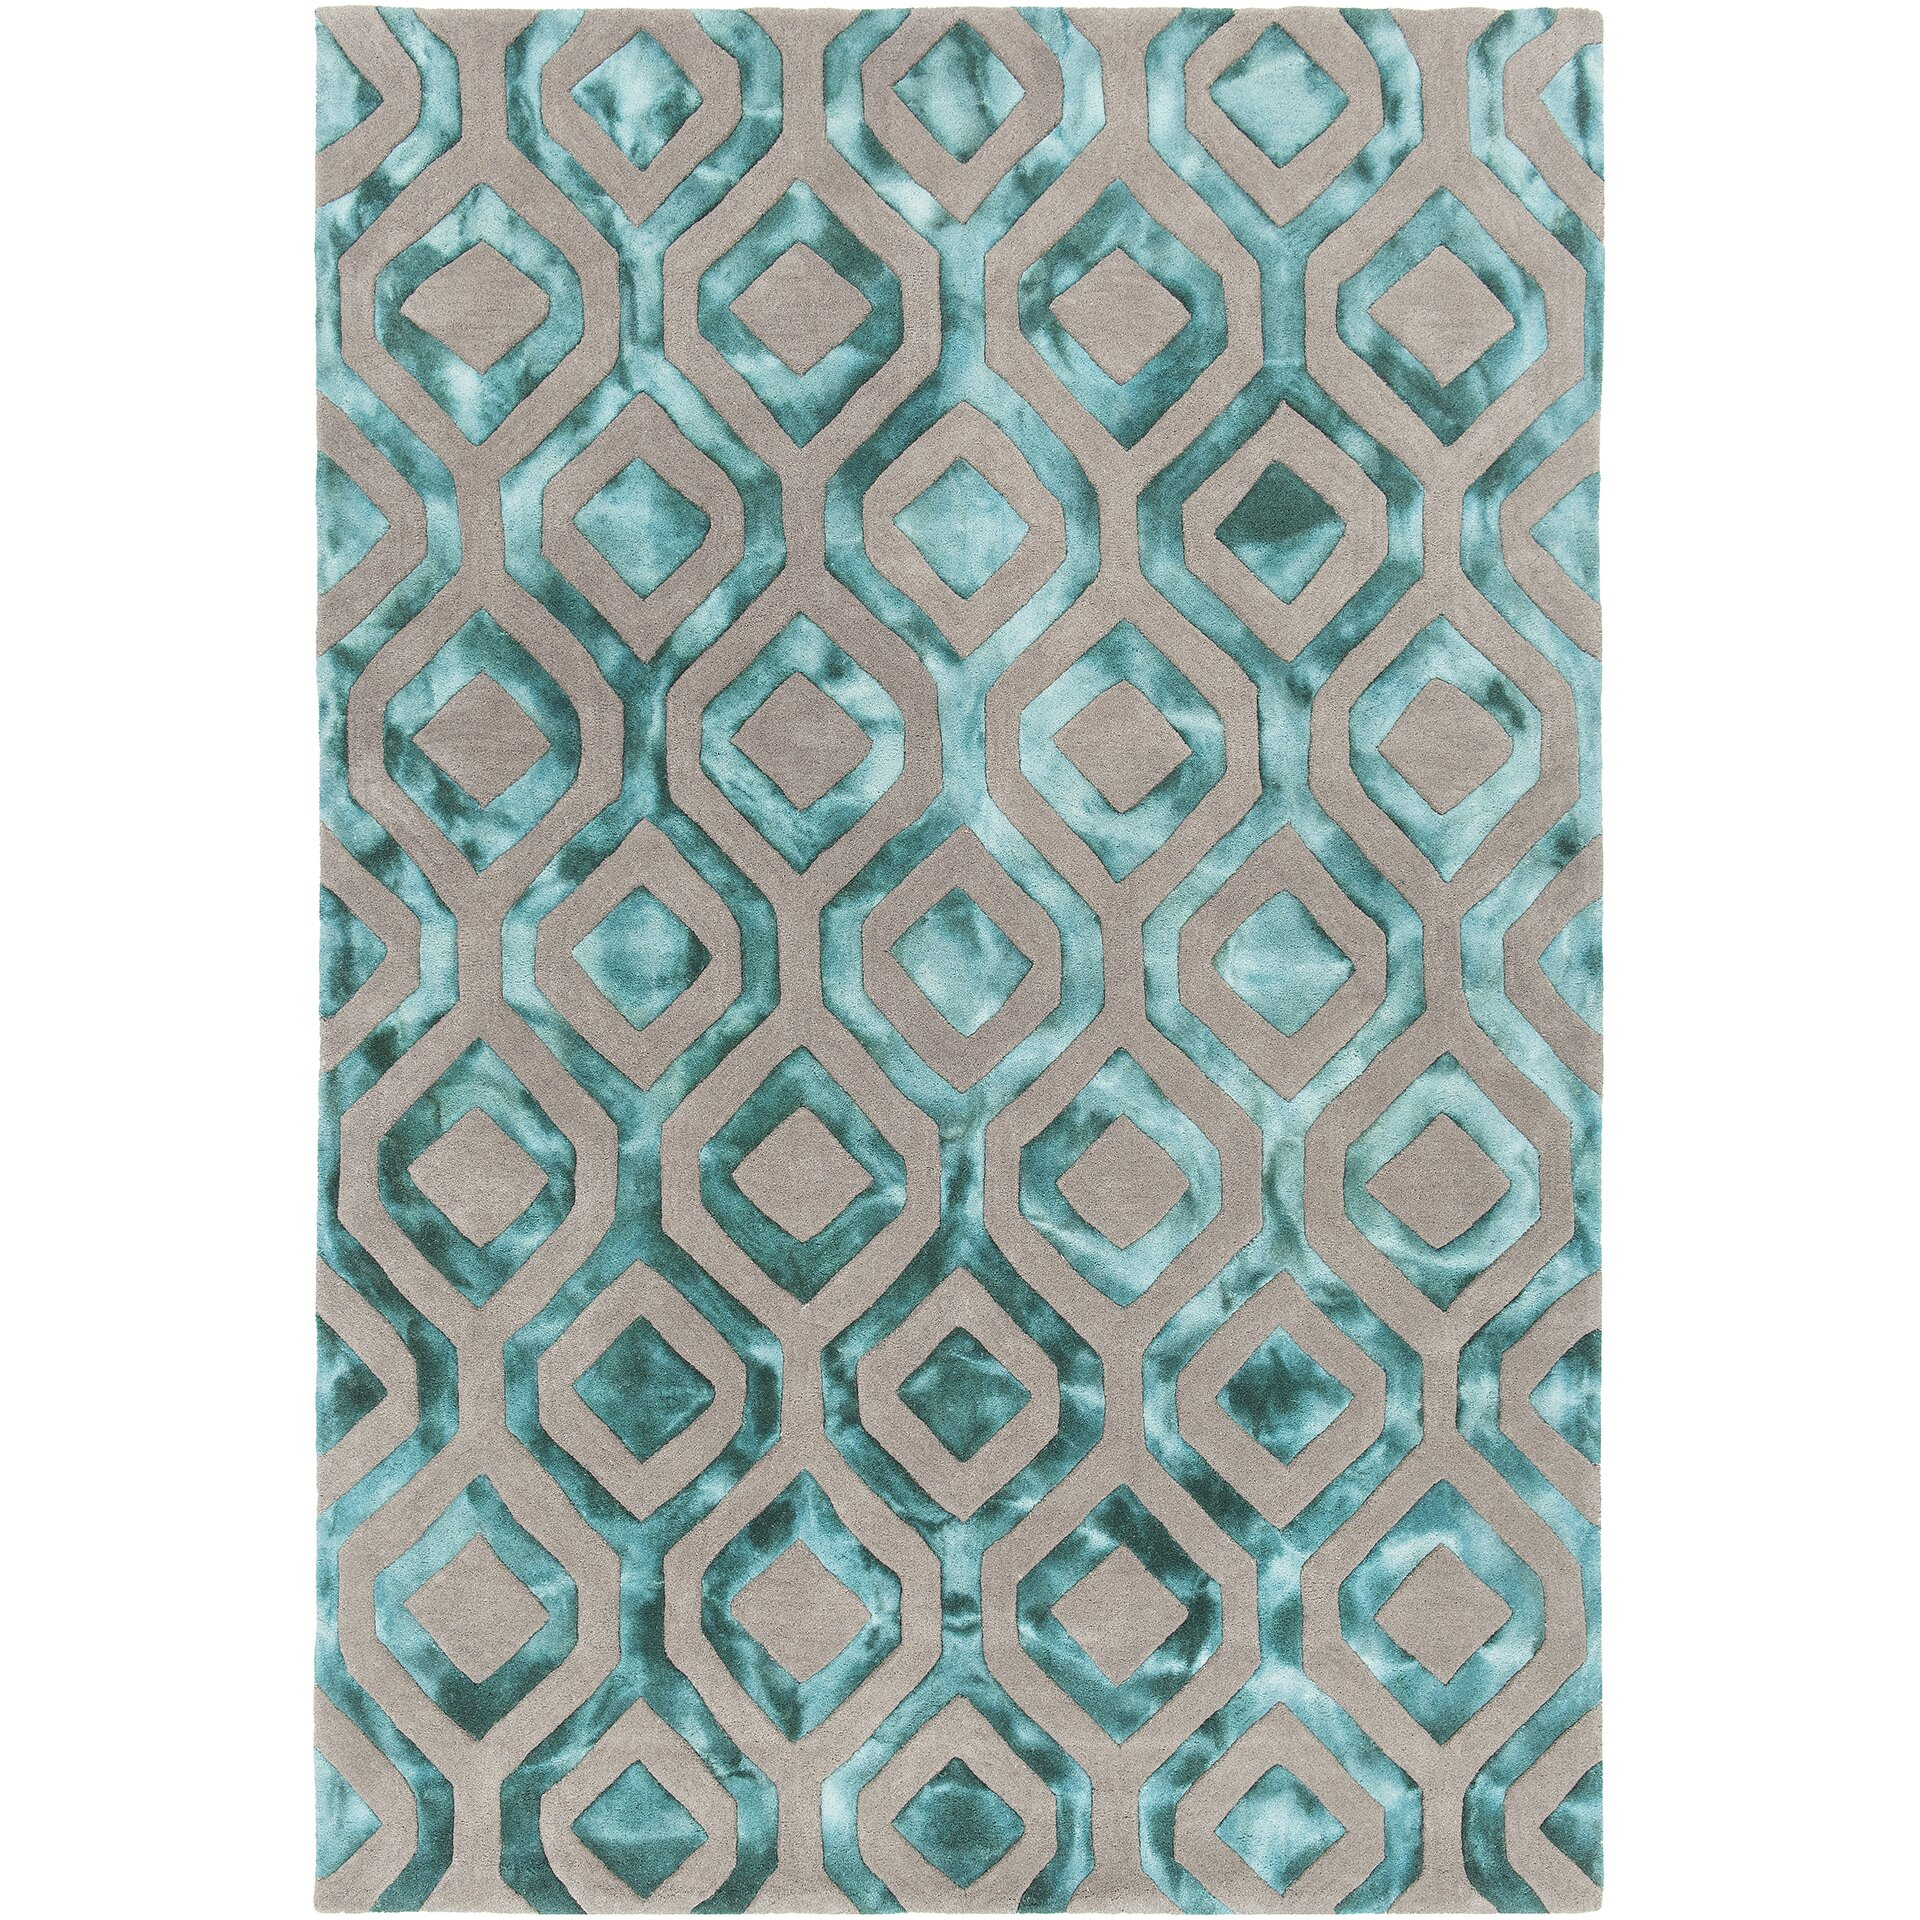 Chandra Fran Hand-Tufted Teal/Gray Area Rug & Reviews